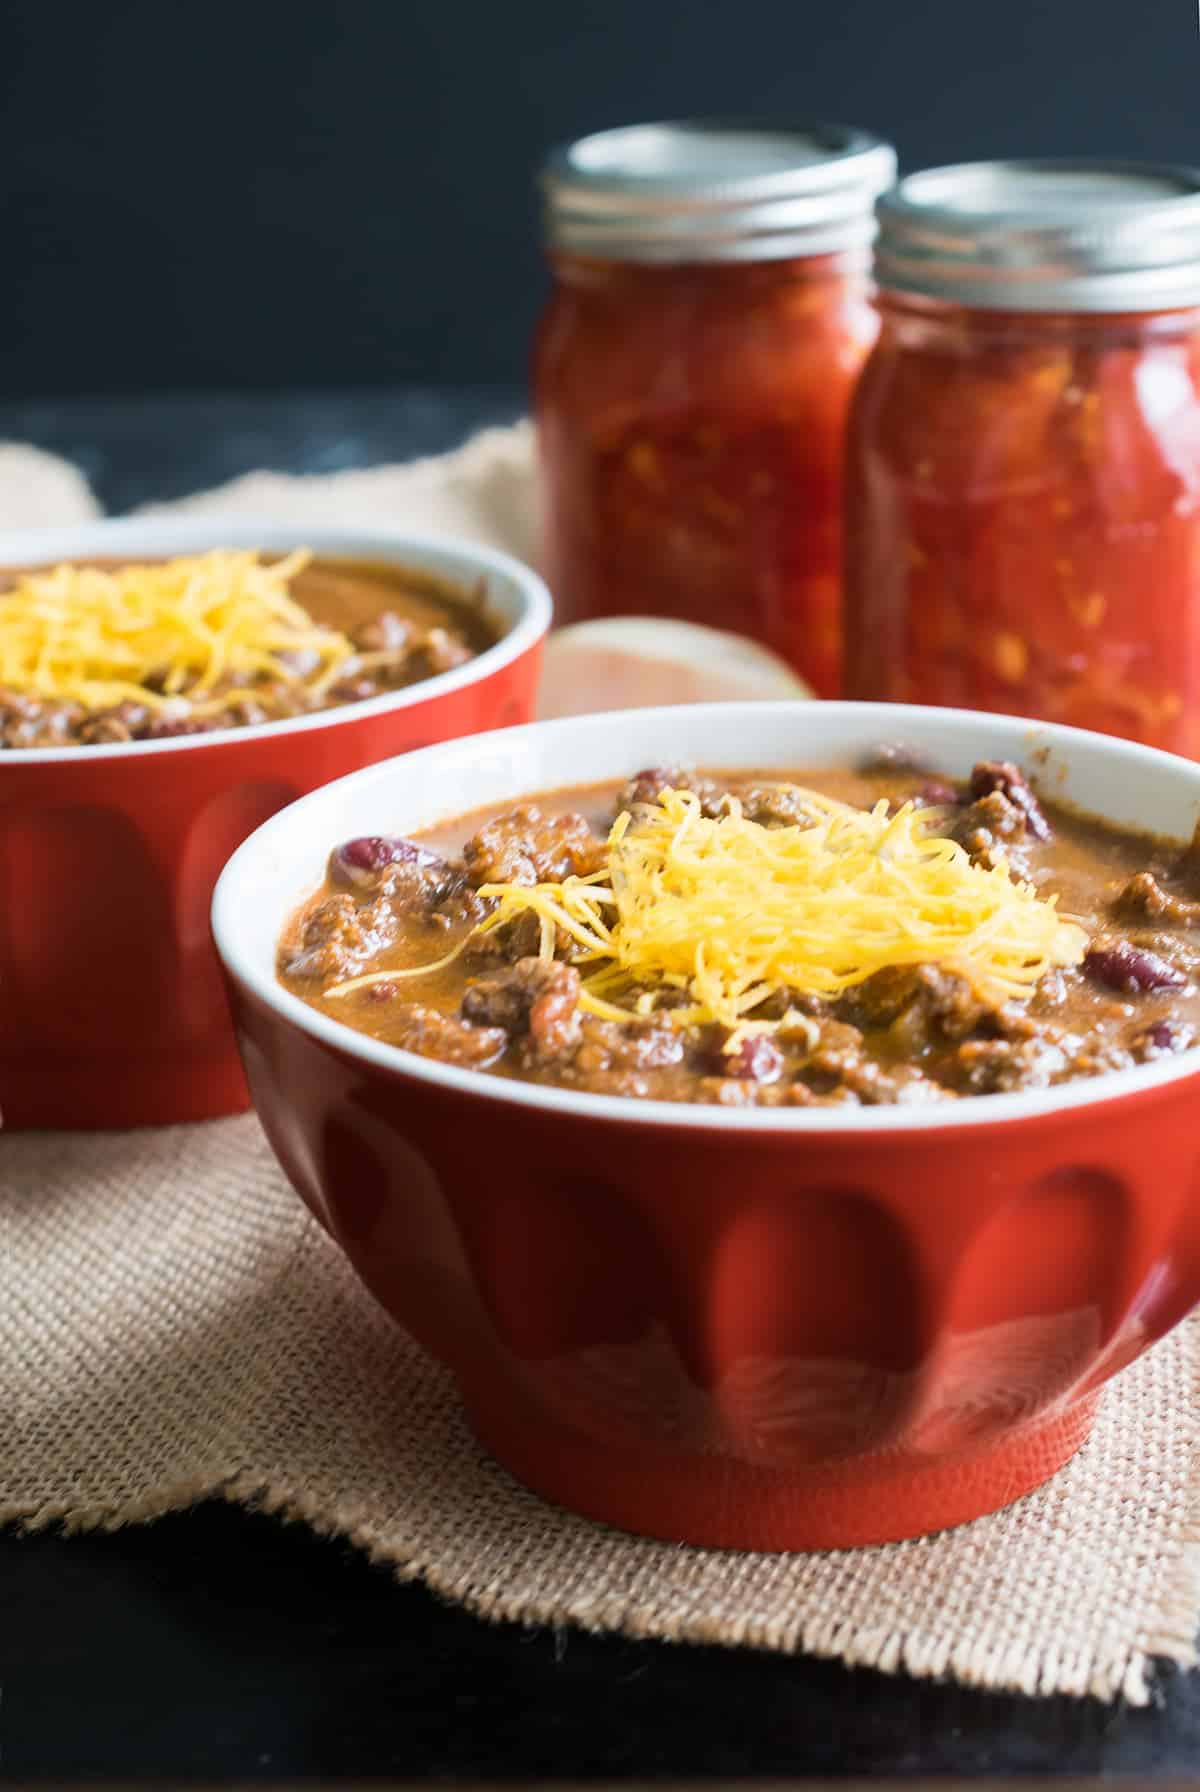 Cincinnati Chili Recipe from scratch - I grew up on this delightful chili and have perfected the seasonings. I list some of my own preferences and differences from the authentic skyline version as well.